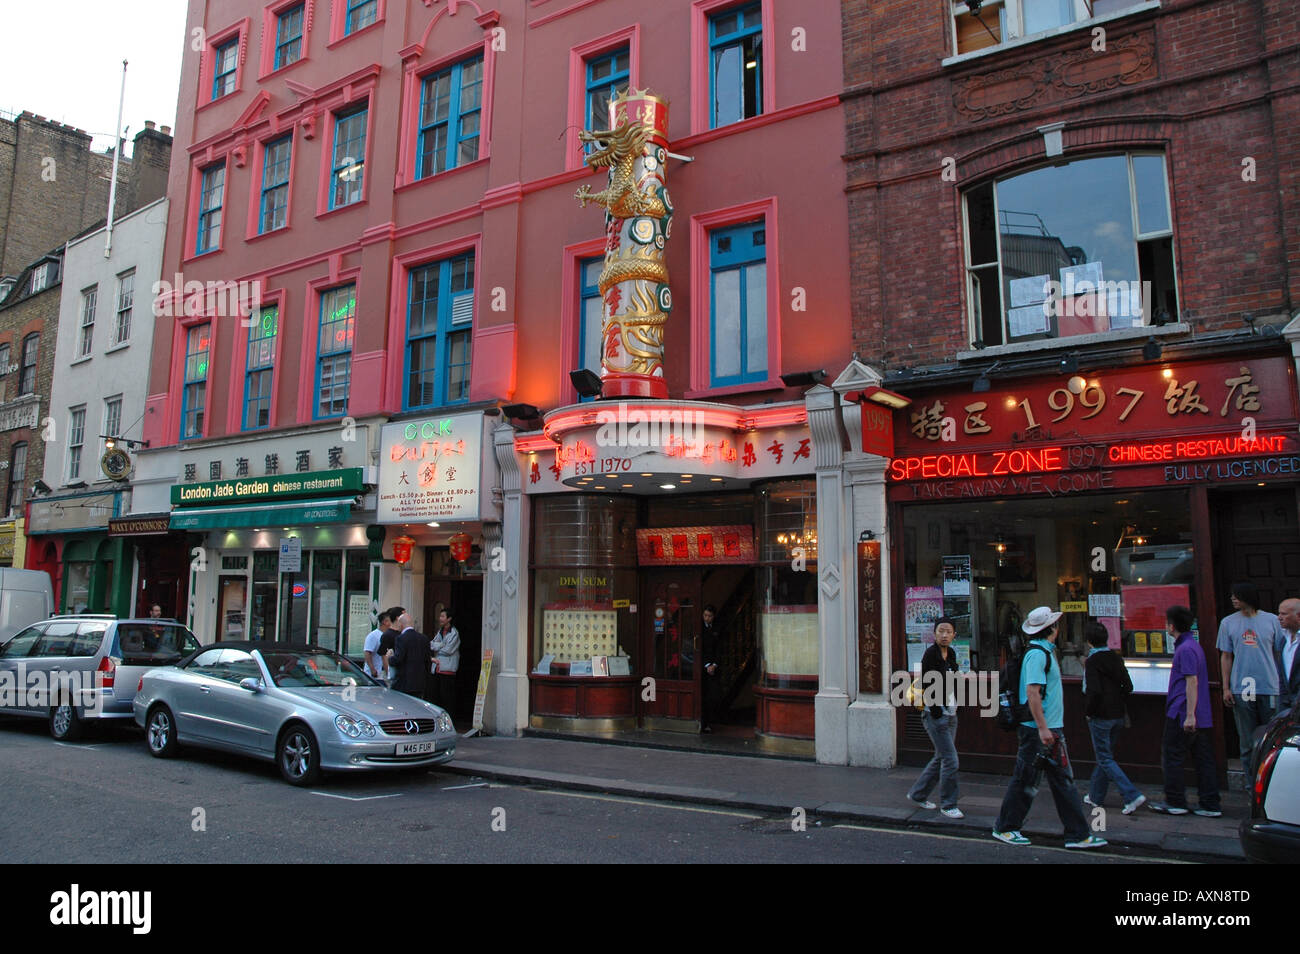 Personable Chuen Cheng Ku Chinese Restaurant At Wardour Street In London  With Interesting Chuen Cheng Ku Chinese Restaurant At Wardour Street In London Chinatown With Awesome Leyland Garden Centre Also Morningside Gardens In Addition Garden Shed Plans Free And Water Collection Systems For Gardens As Well As Sunbed Welwyn Garden City Additionally Euphorbia Garden Design From Alamycom With   Interesting Chuen Cheng Ku Chinese Restaurant At Wardour Street In London  With Awesome Chuen Cheng Ku Chinese Restaurant At Wardour Street In London Chinatown And Personable Leyland Garden Centre Also Morningside Gardens In Addition Garden Shed Plans Free From Alamycom